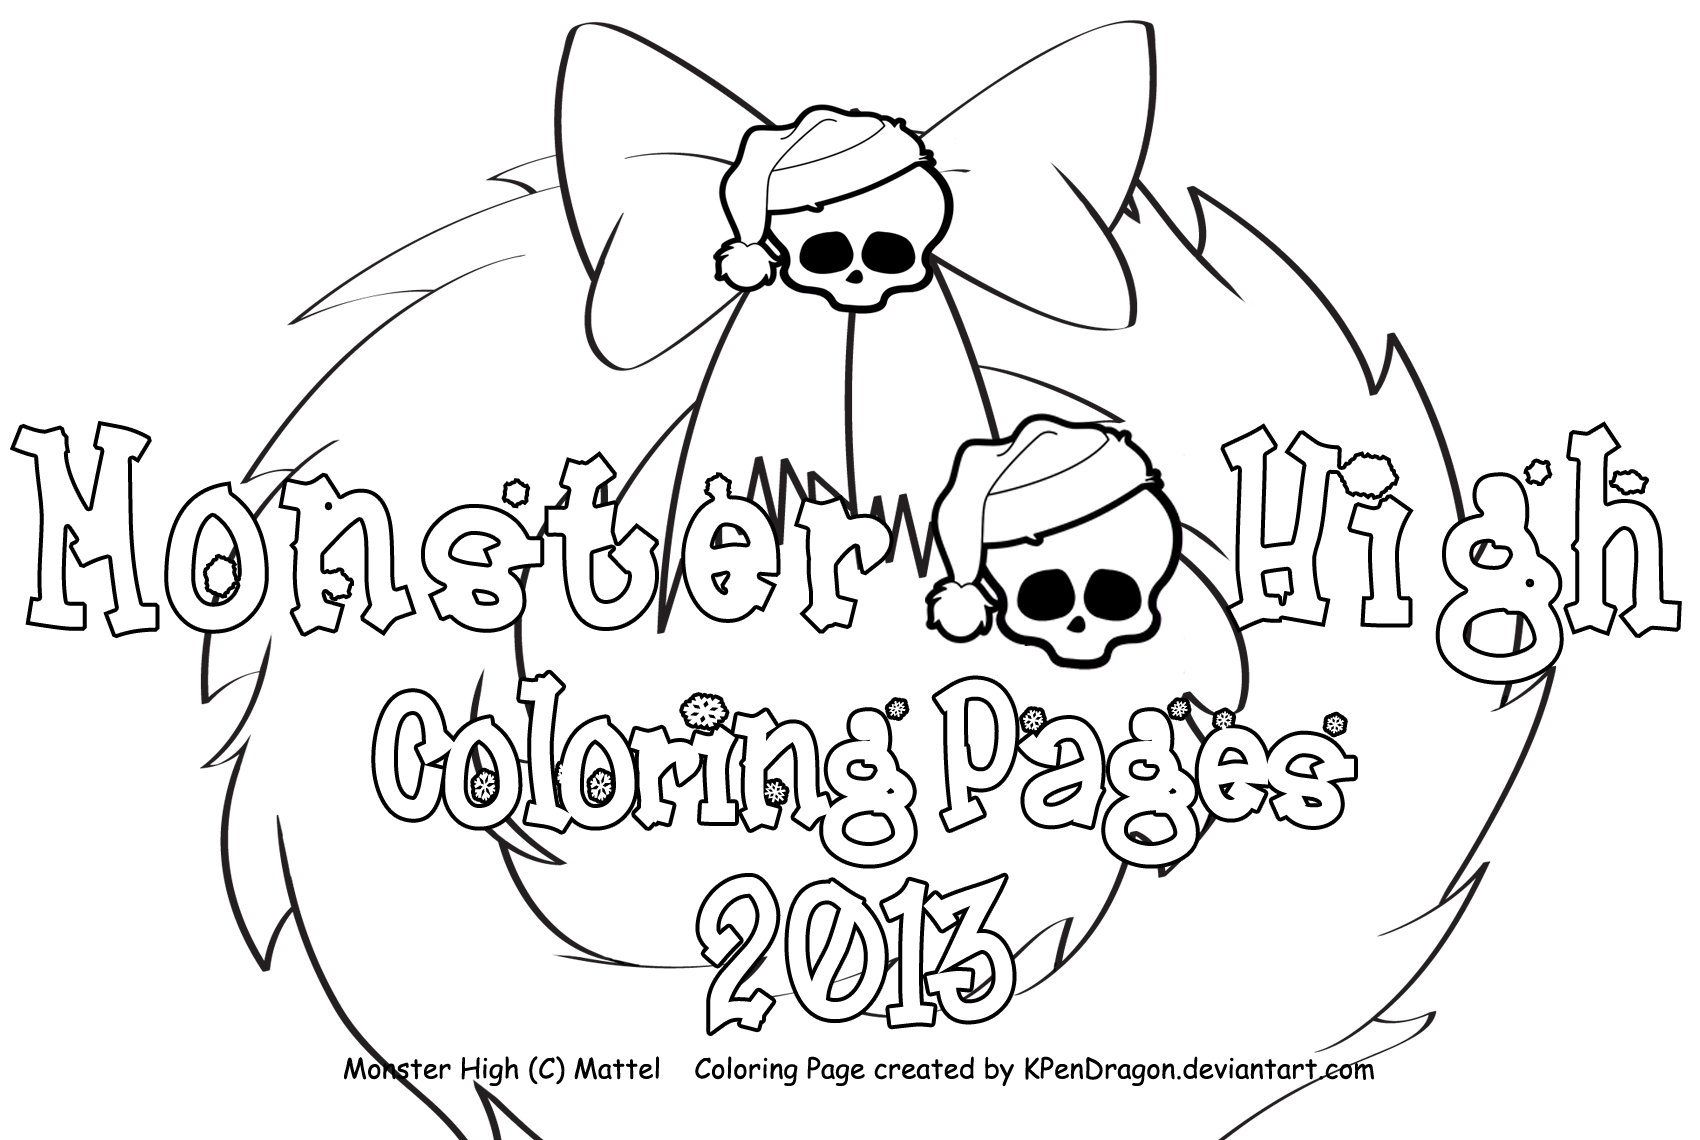 MH Holiday Coloring Pages 2013 by KPenDragon on DeviantArt